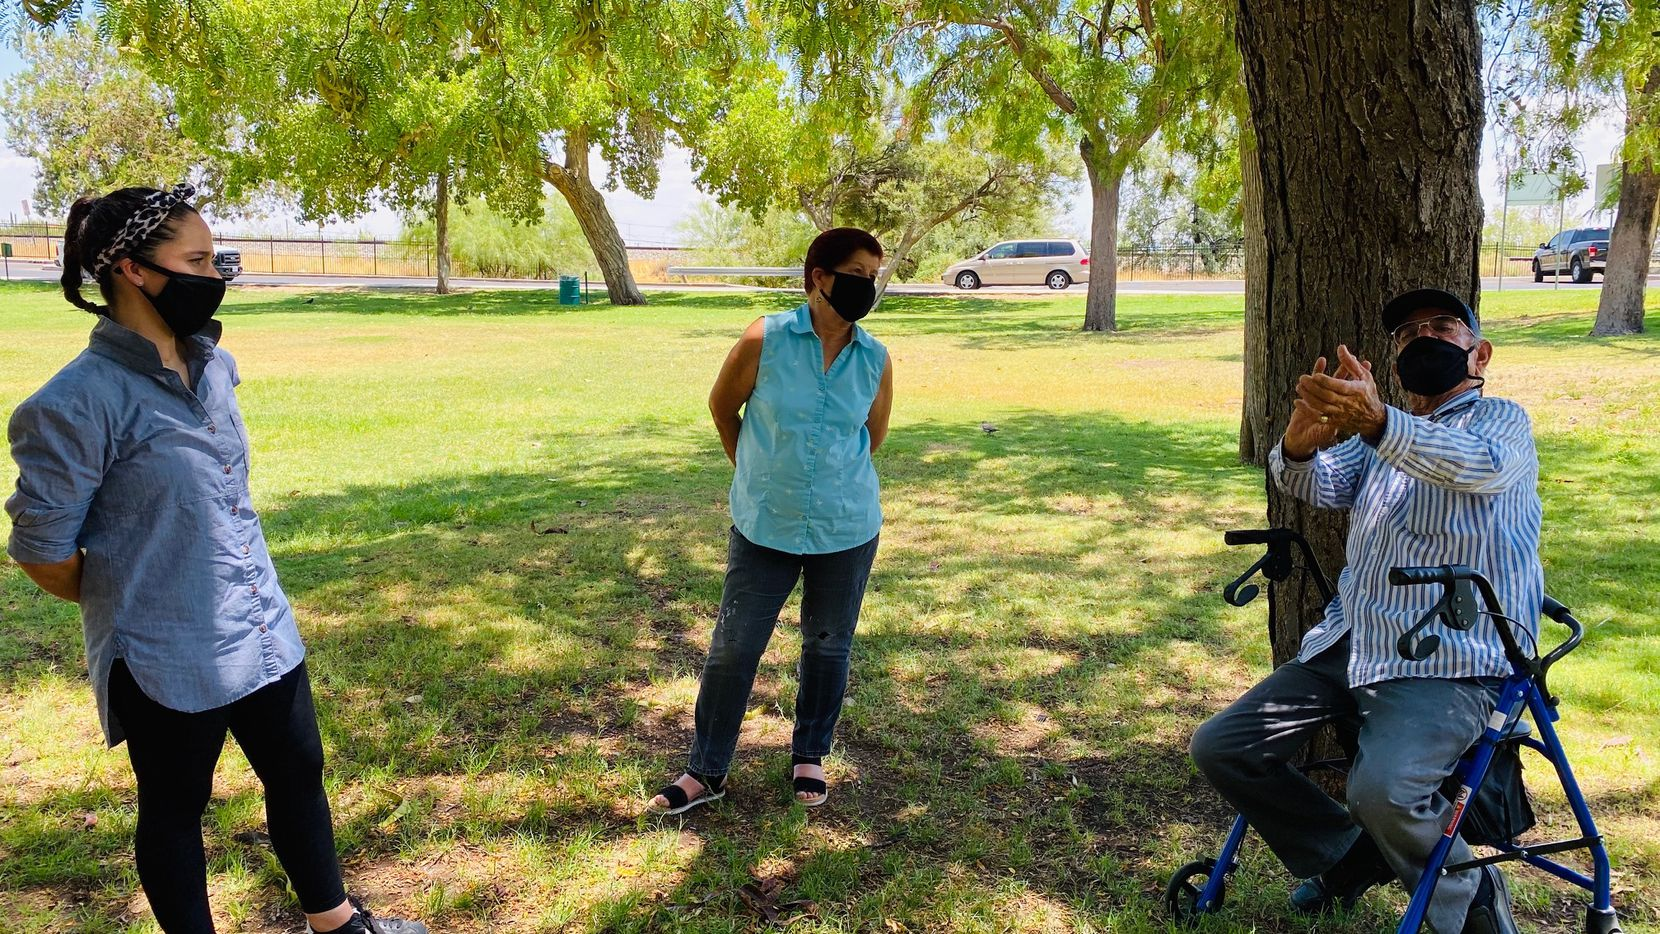 Walmart shooting survivors Adria Gonzalez (left), her mother Agueda Ponce Torres and Eduardo Castro reunited on July 20th at a park in El Paso. The three recalled the tragic Aug. 3 massacre last year as Castro mimicked the sounds of gun blasts.